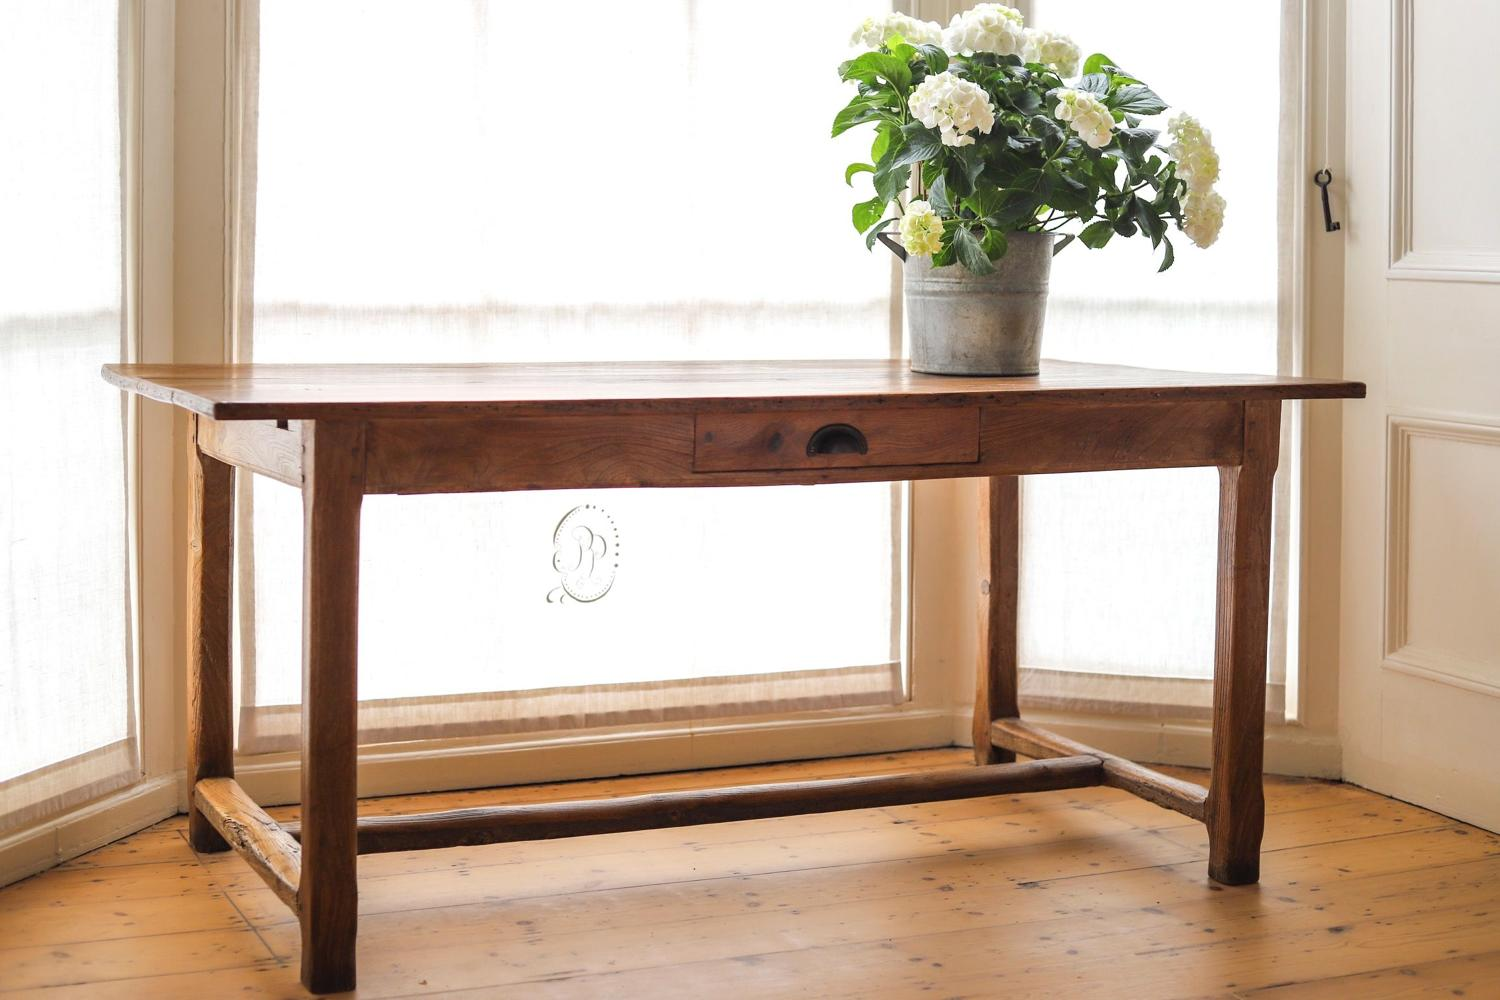 19th century French antique elm farmhouse table